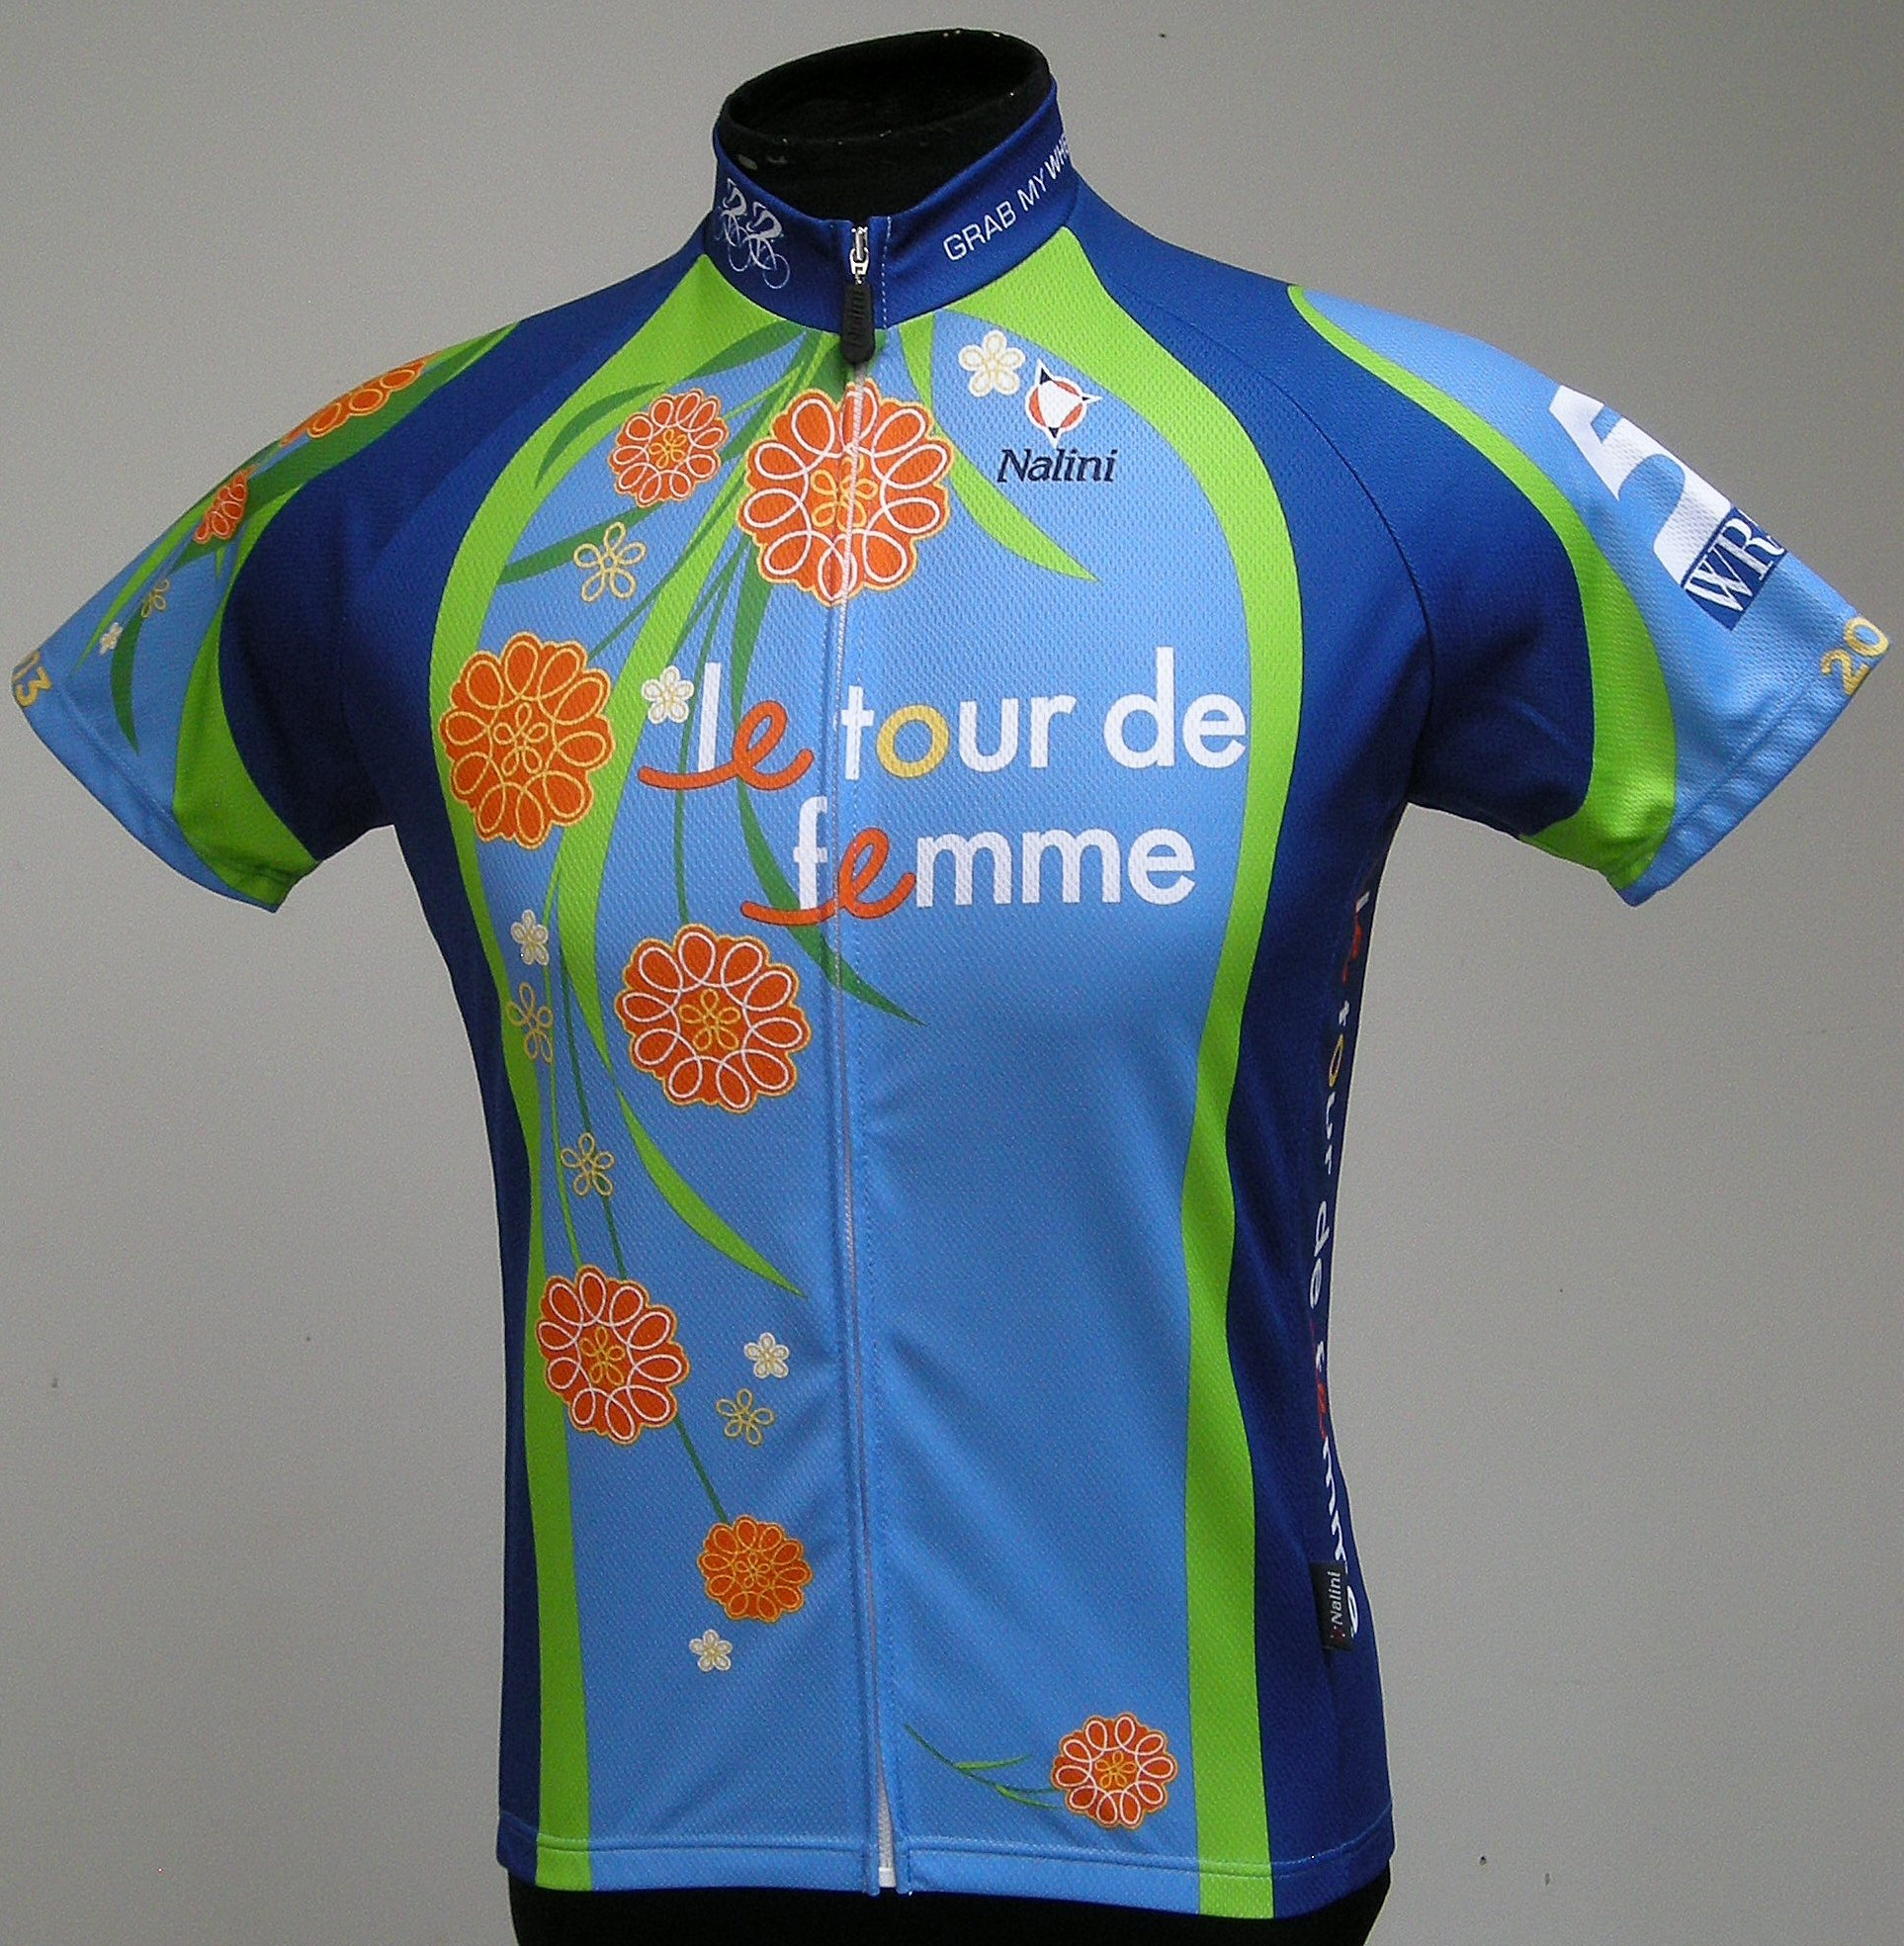 Le Tour de Femme 2013 Breast Cancer Awareness Cycling Jersey